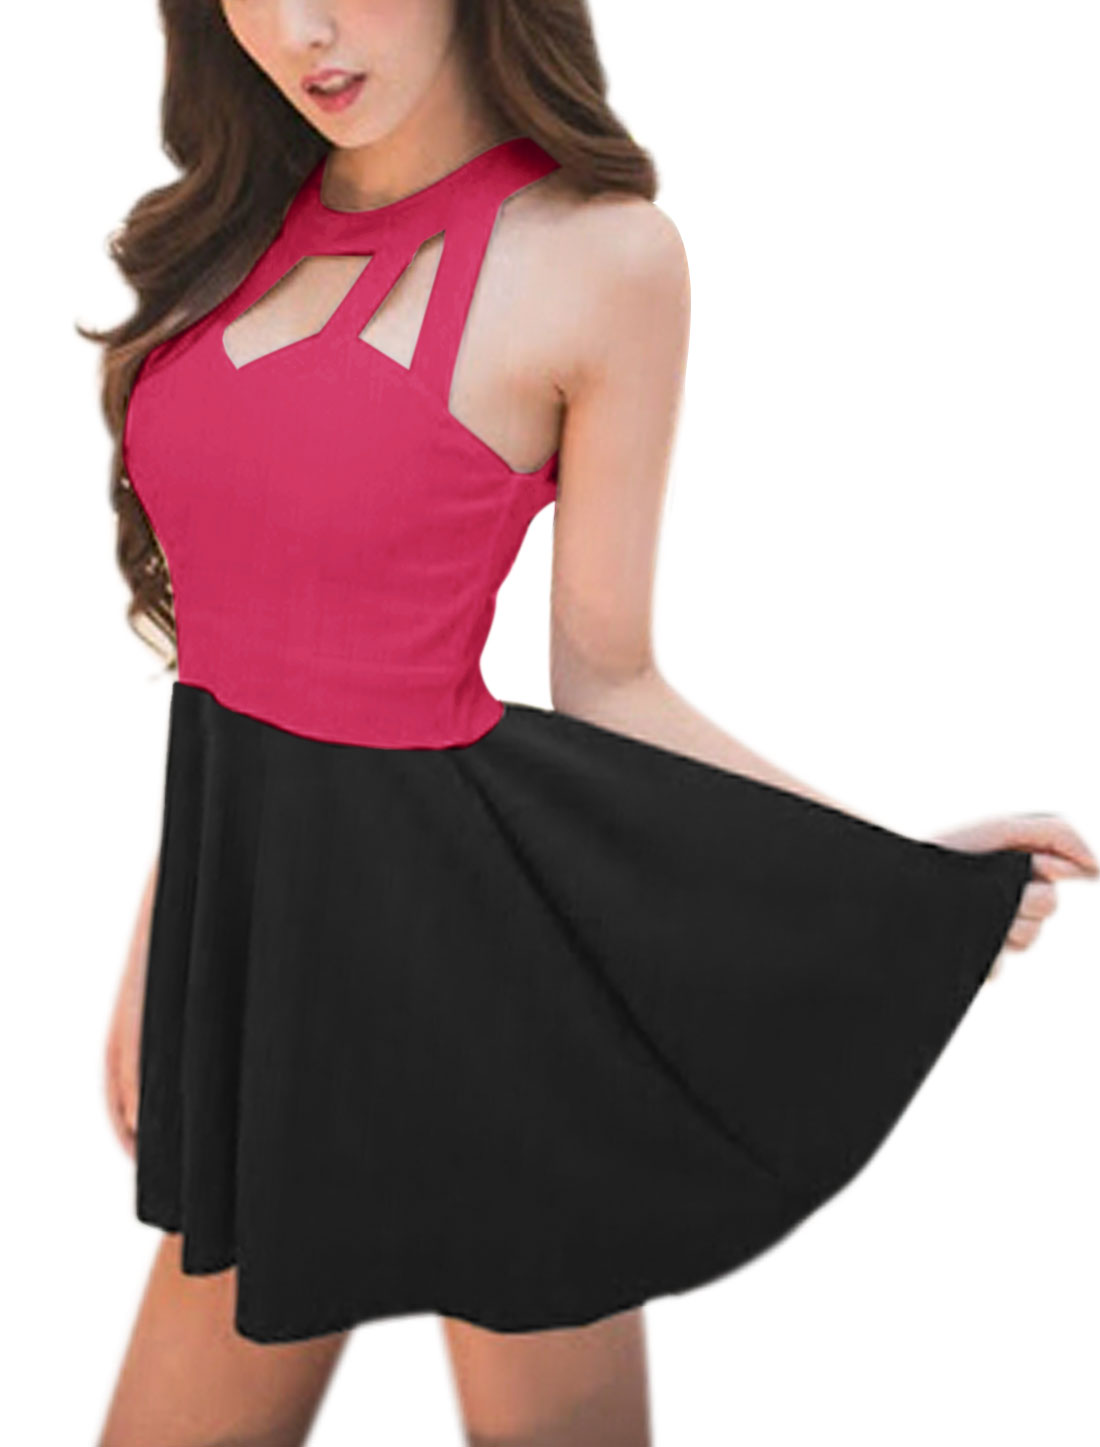 Ladies Round Neck Sleeveless Color Block A Line Dresses Fuchsia Black XS